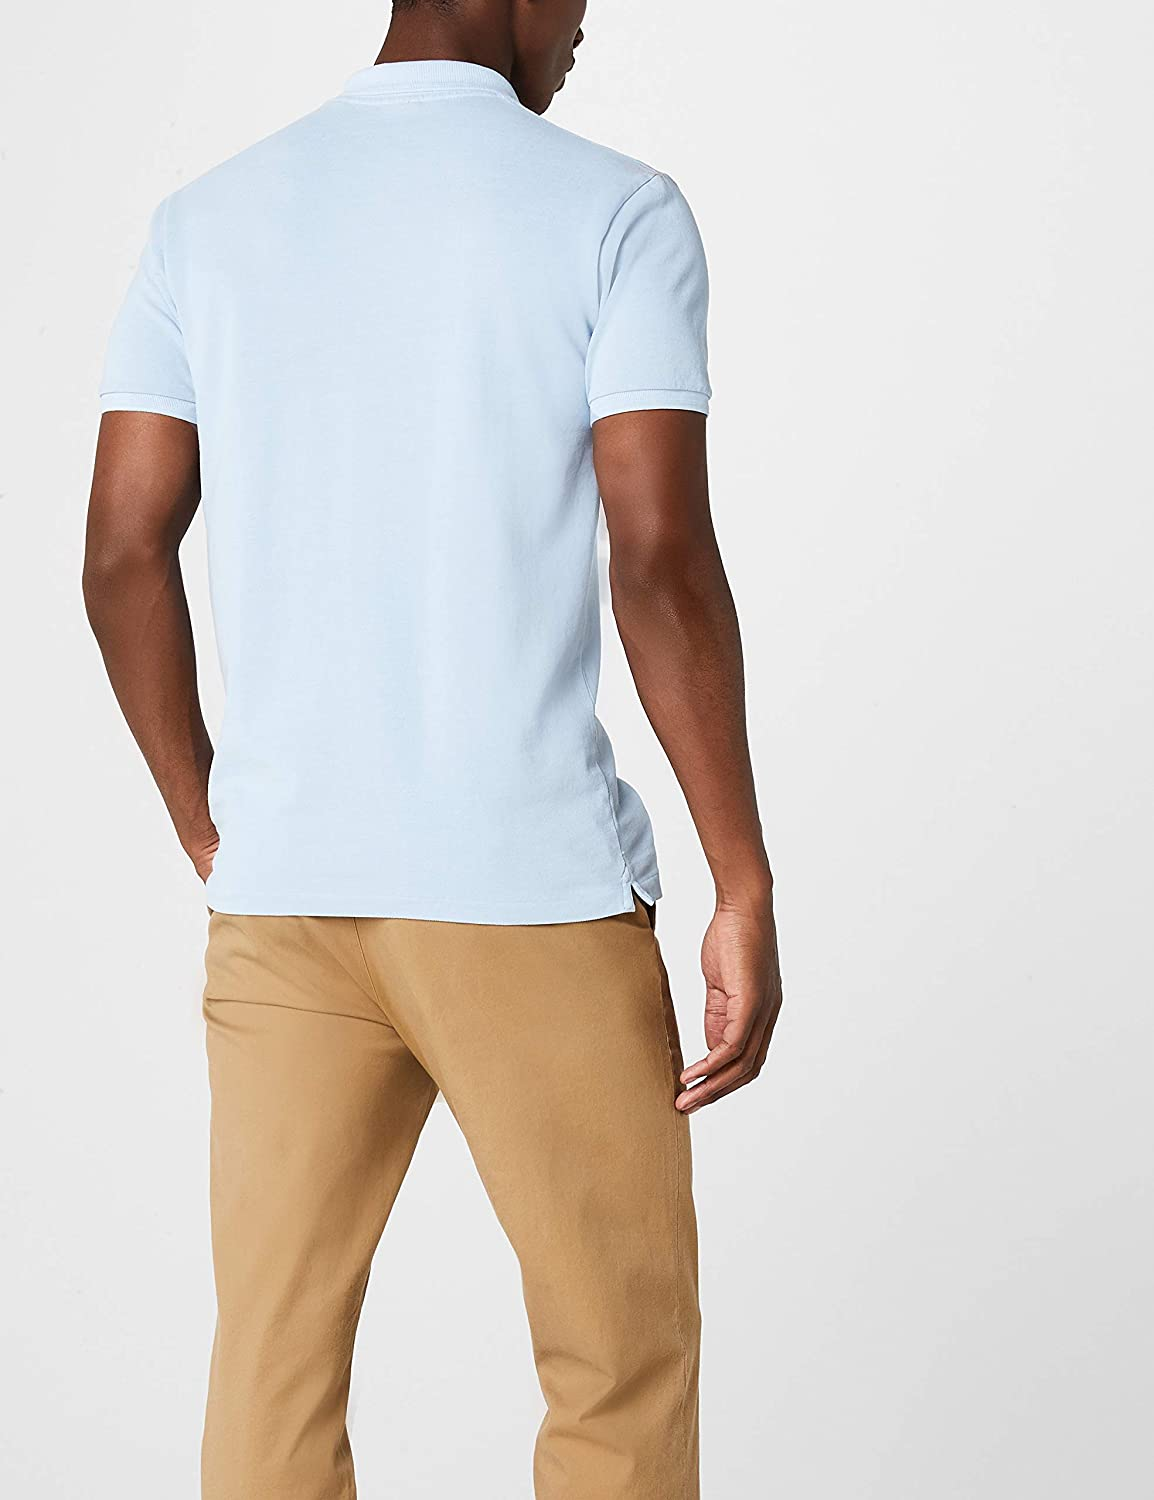 Scotch /& Soda Mens Garment-Dyed Polo Shirt